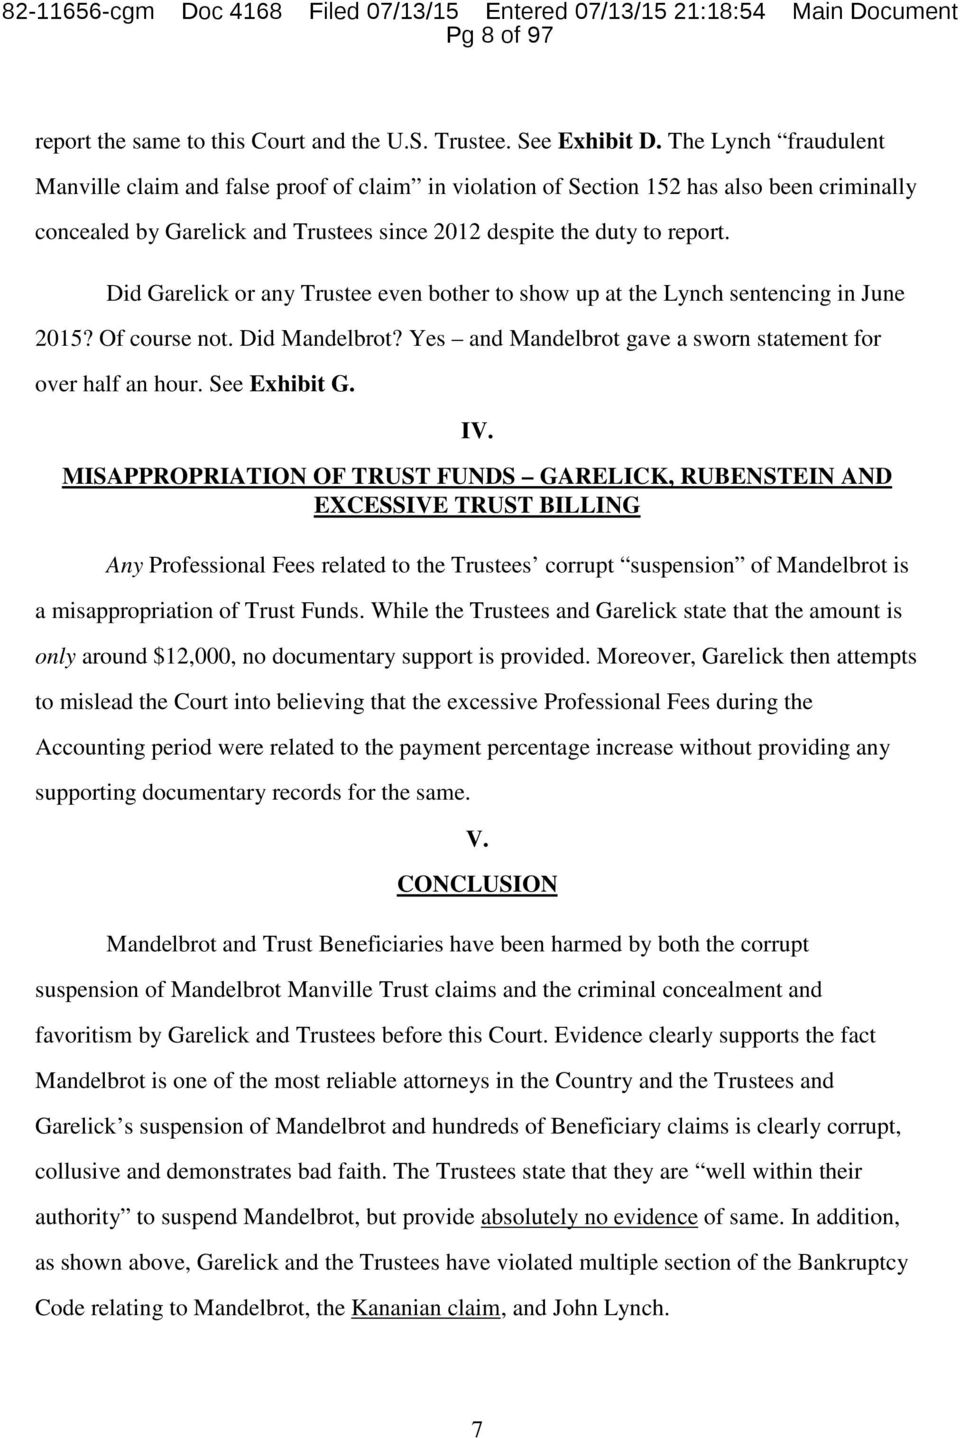 Did Garelick or any Trustee even bother to show up at the Lynch sentencing in June 2015? Of course not. Did Mandelbrot? Yes and Mandelbrot gave a sworn statement for over half an hour. See Exhibit G.